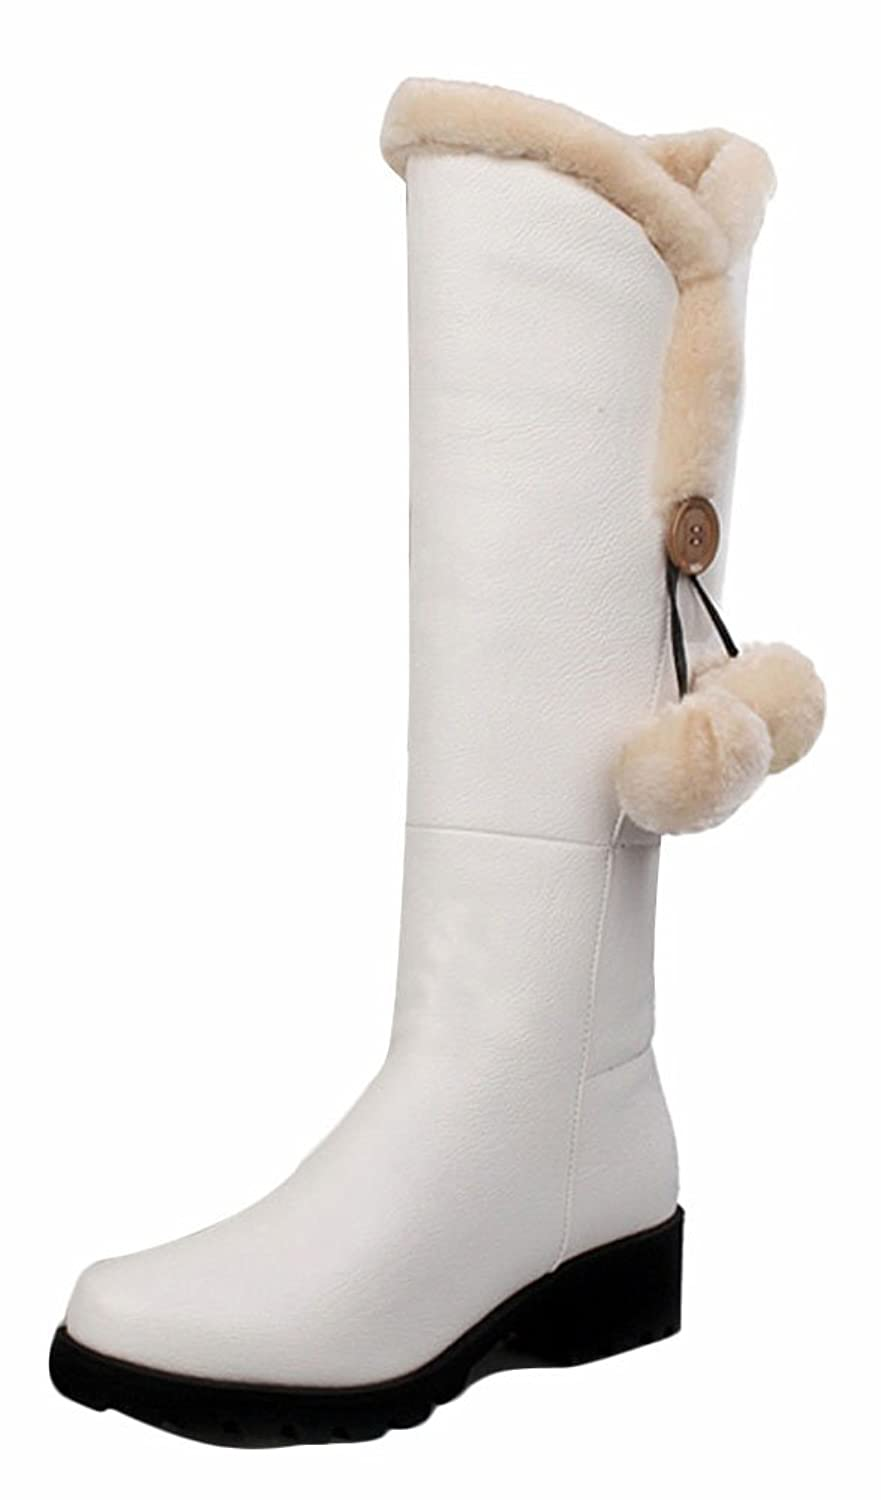 Ace Women's Winter Platform Flat Knee-high Thermal Knight Boots with Fur